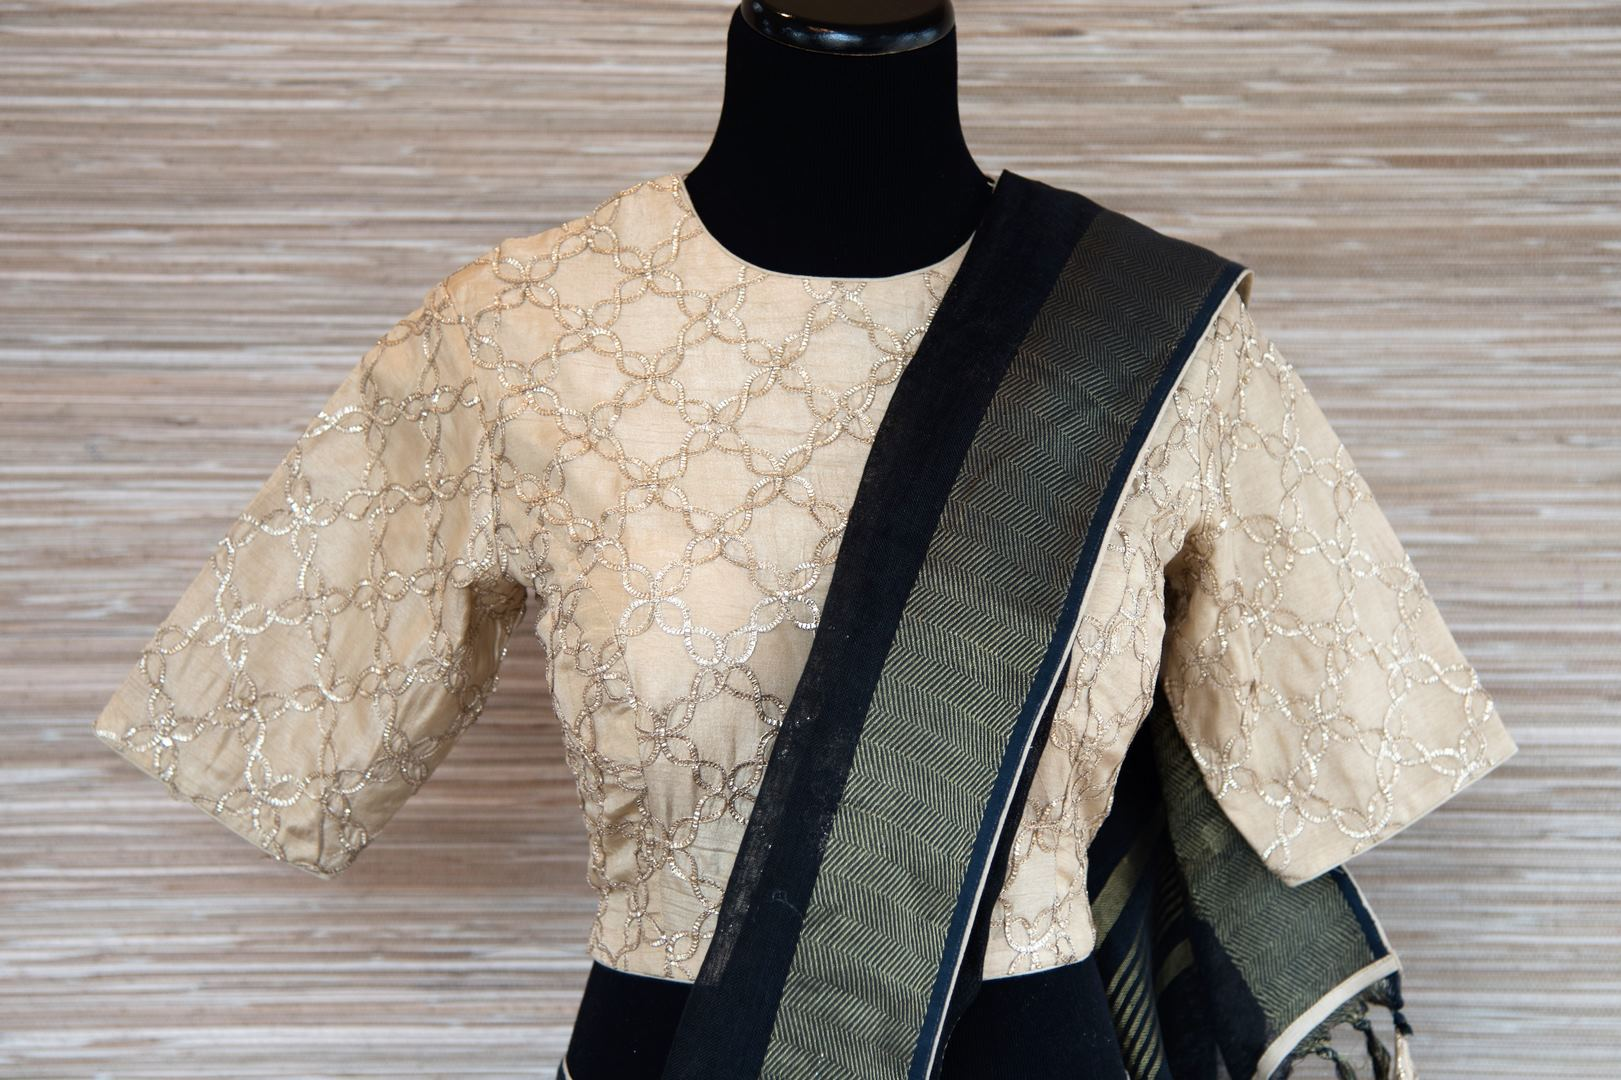 Shop black linen saree online in USA with zari border and bird nest motifs. Make your ethnic style even more stylish with an exclusive range on Indian handloom sarees from Pure Elegance Indian fashion store in USA. -blouse pallu